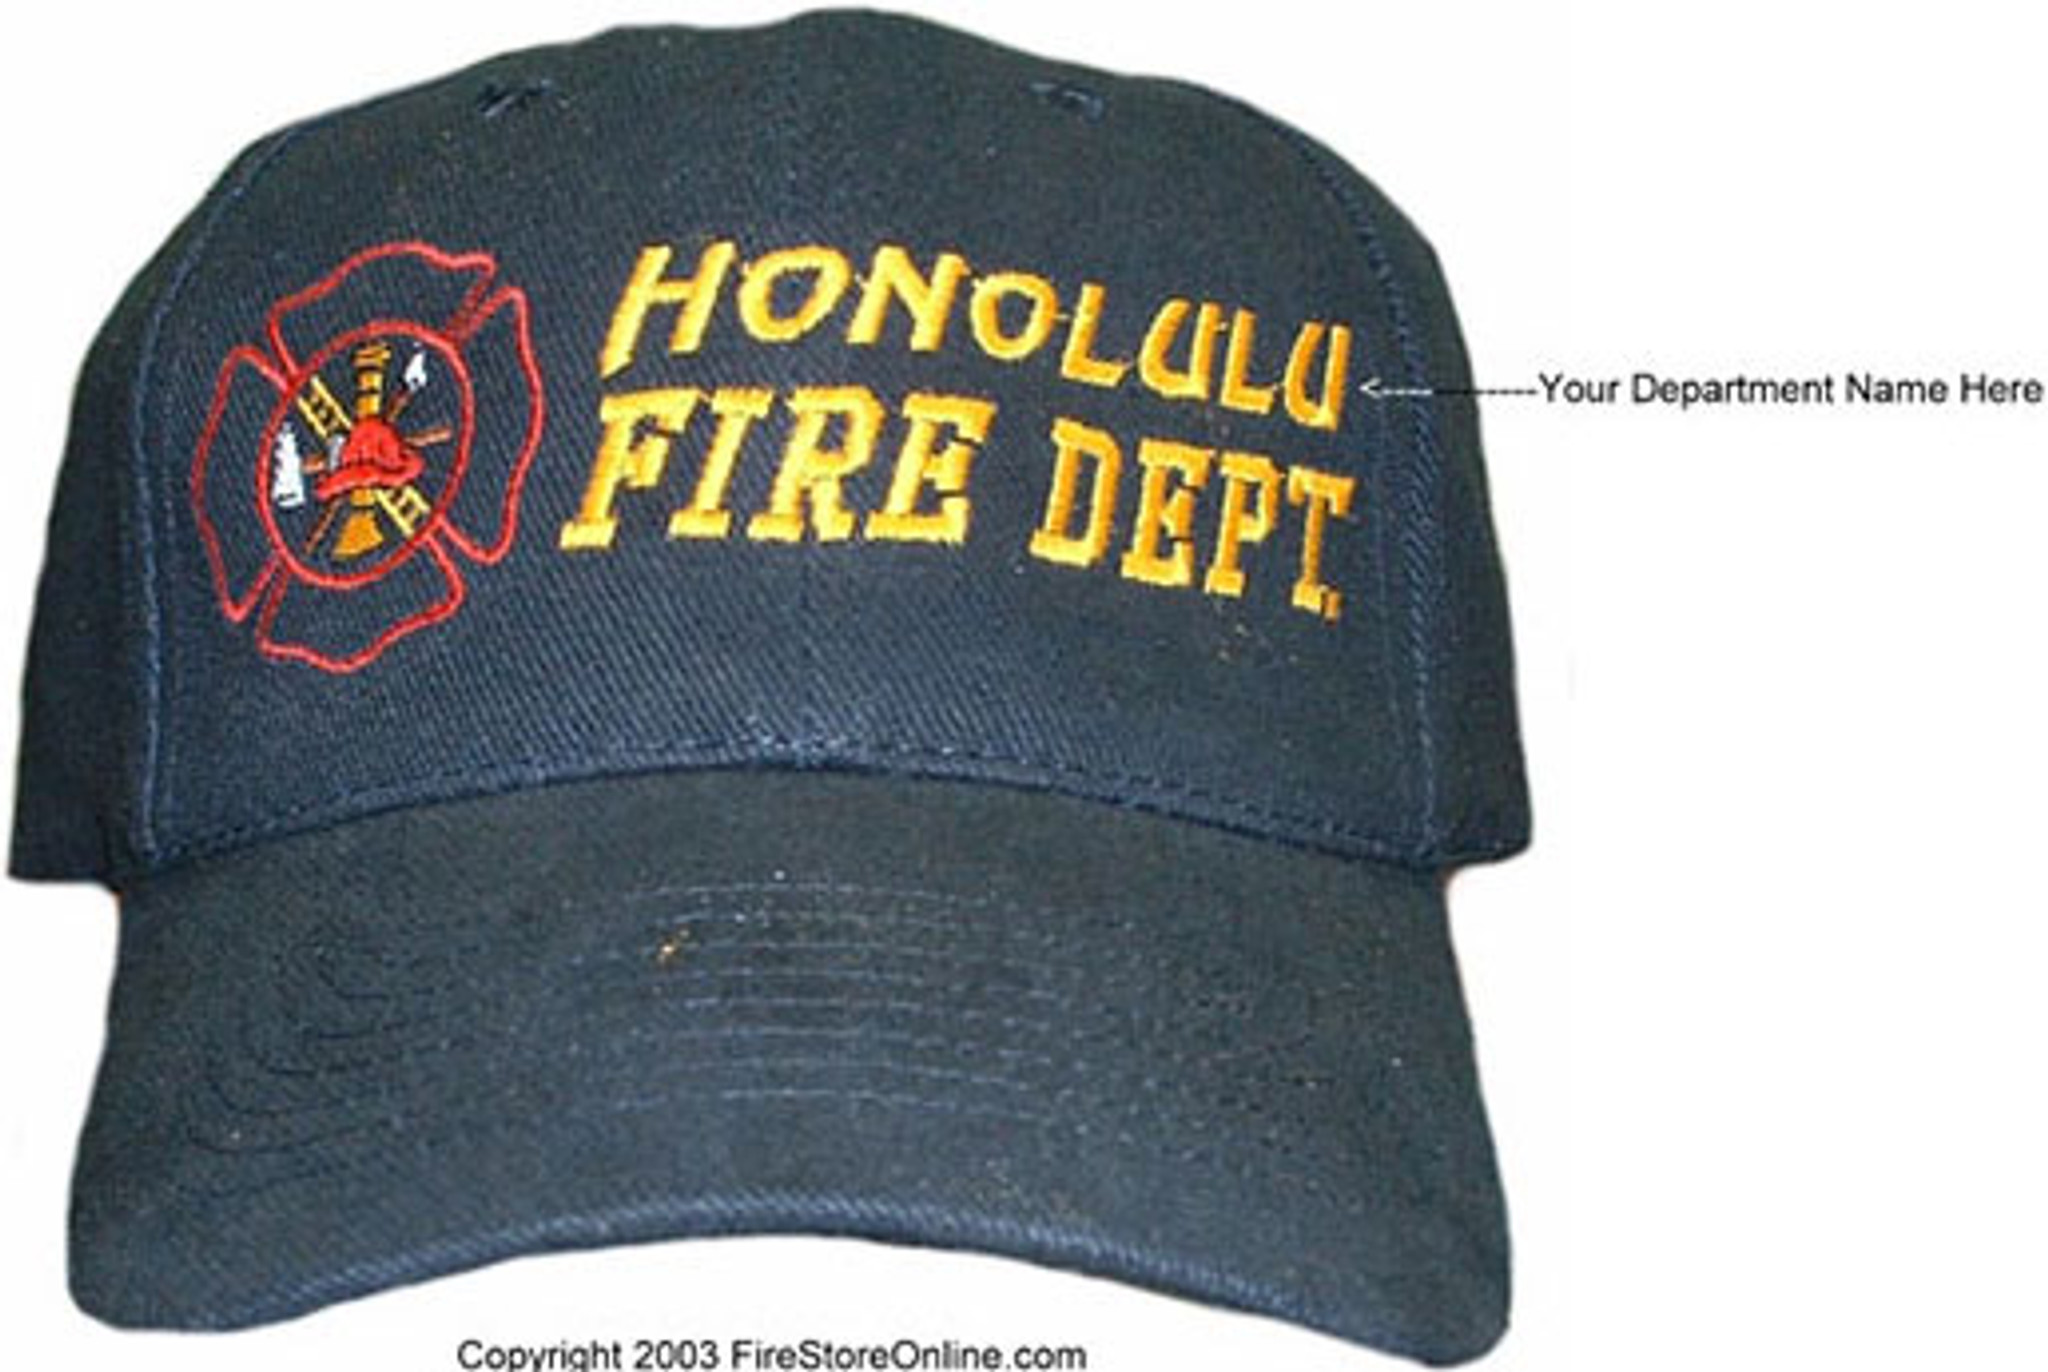 73549bd5 Custom Embroidered Hat (fire dept) - Design Your Own Online ...